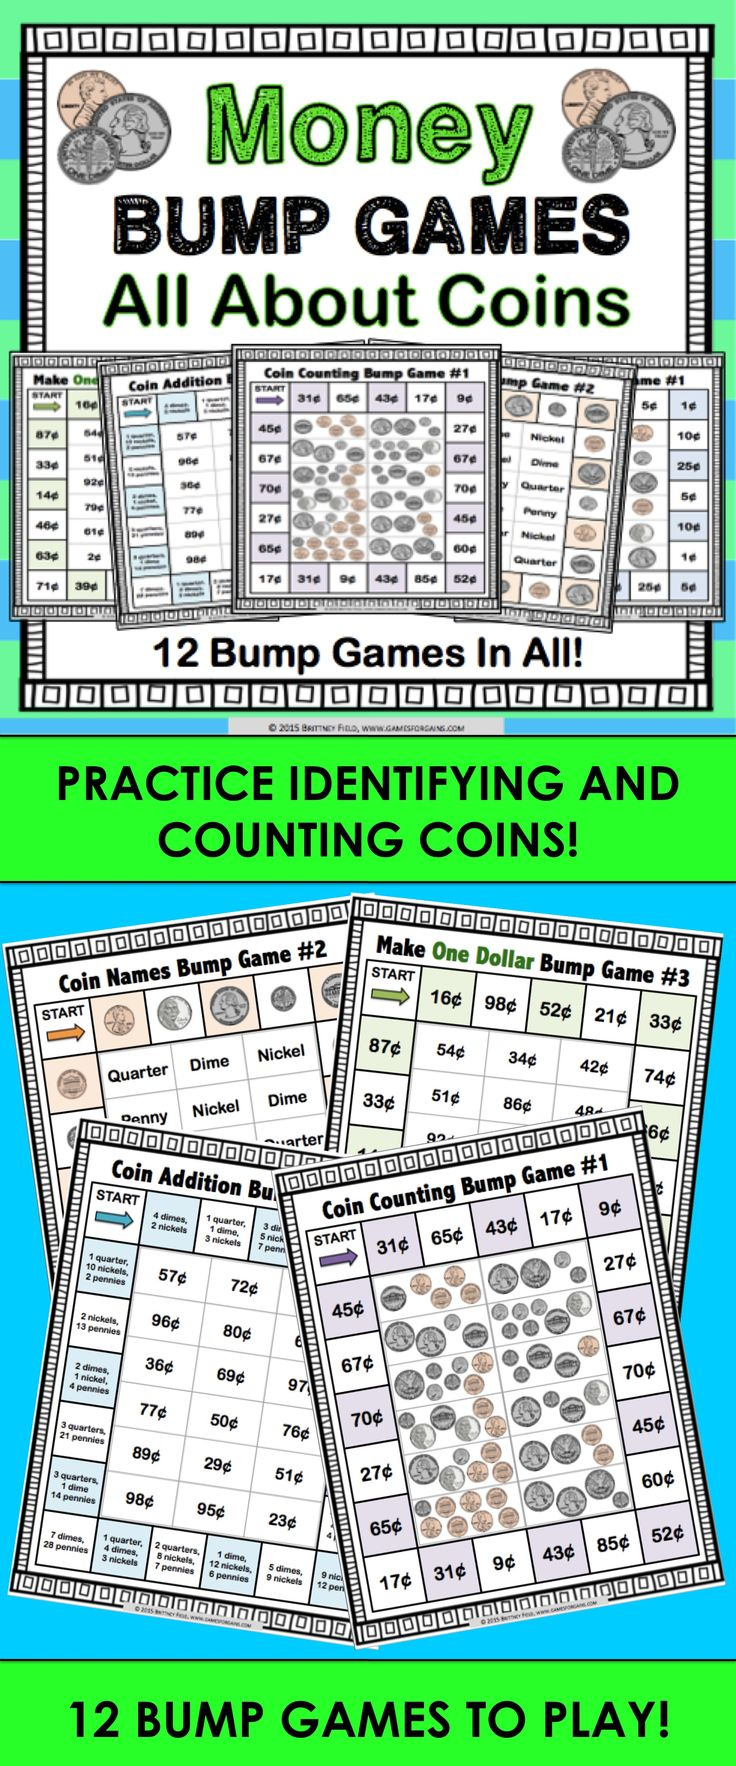 Money - All About Coins Bump Games contains 12 different money games to help students practice naming coins, identifying coin values, counting coins, and adding coins. These money bump games are so simple to use, and take a minimal amount of prep. Simply print out the game sheet, get 2 dice and 20 counters, and you'll be ready to go!